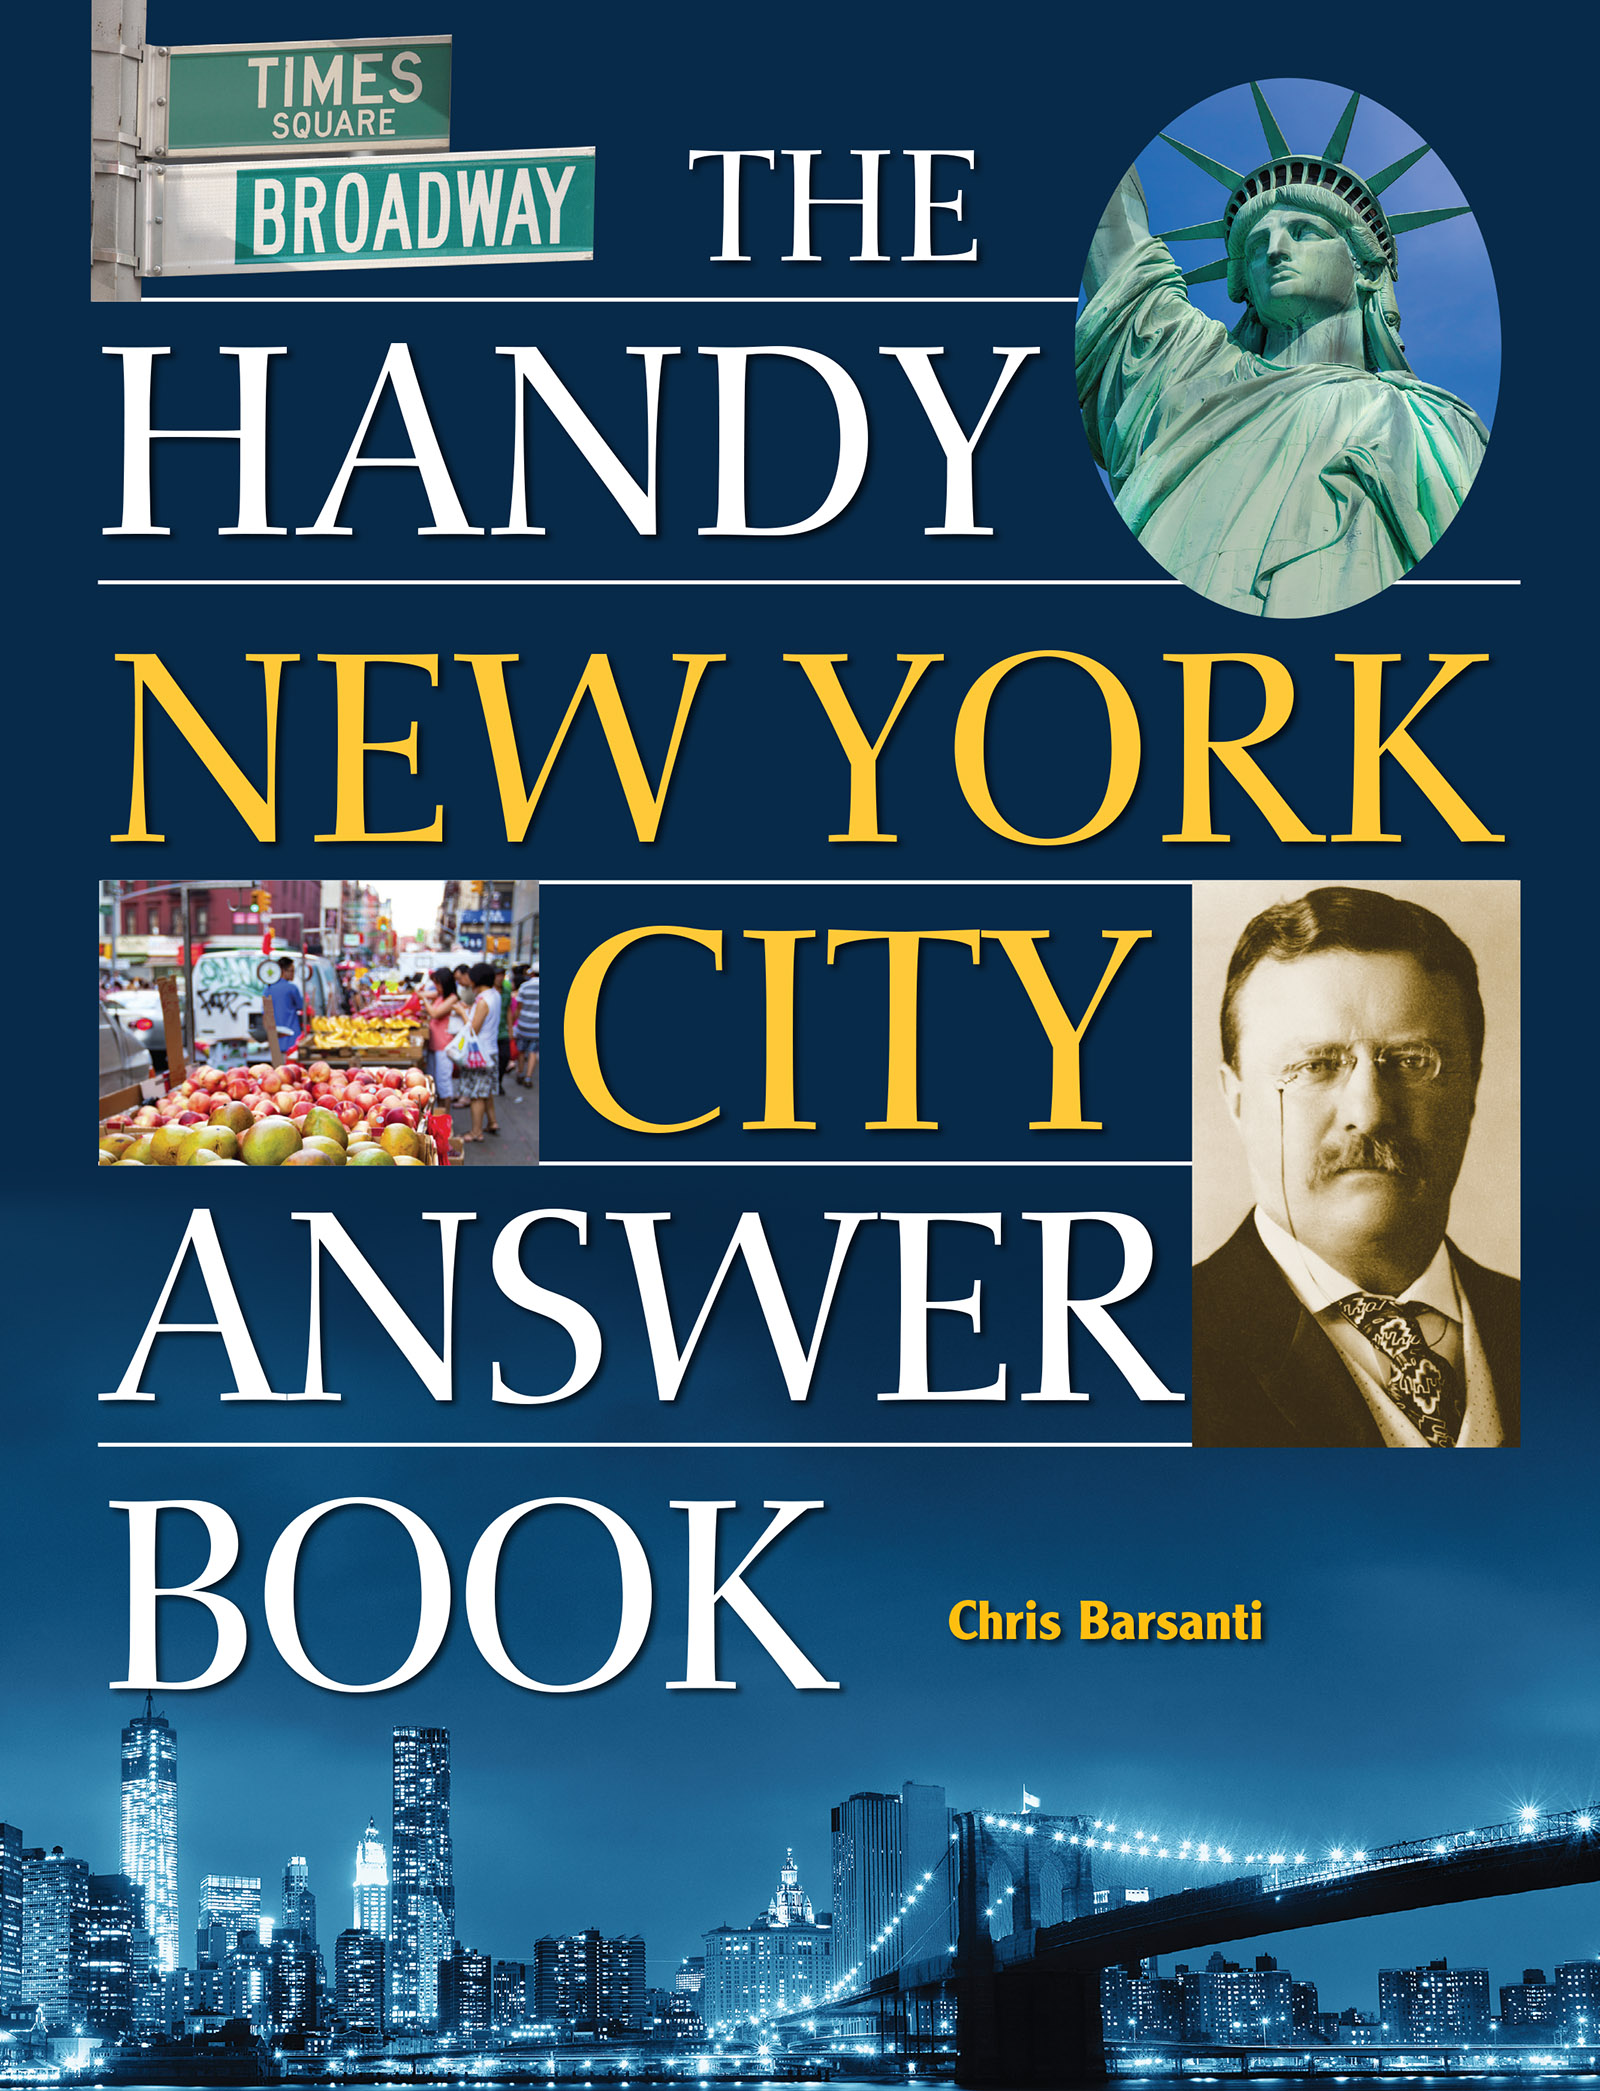 Handy New York City